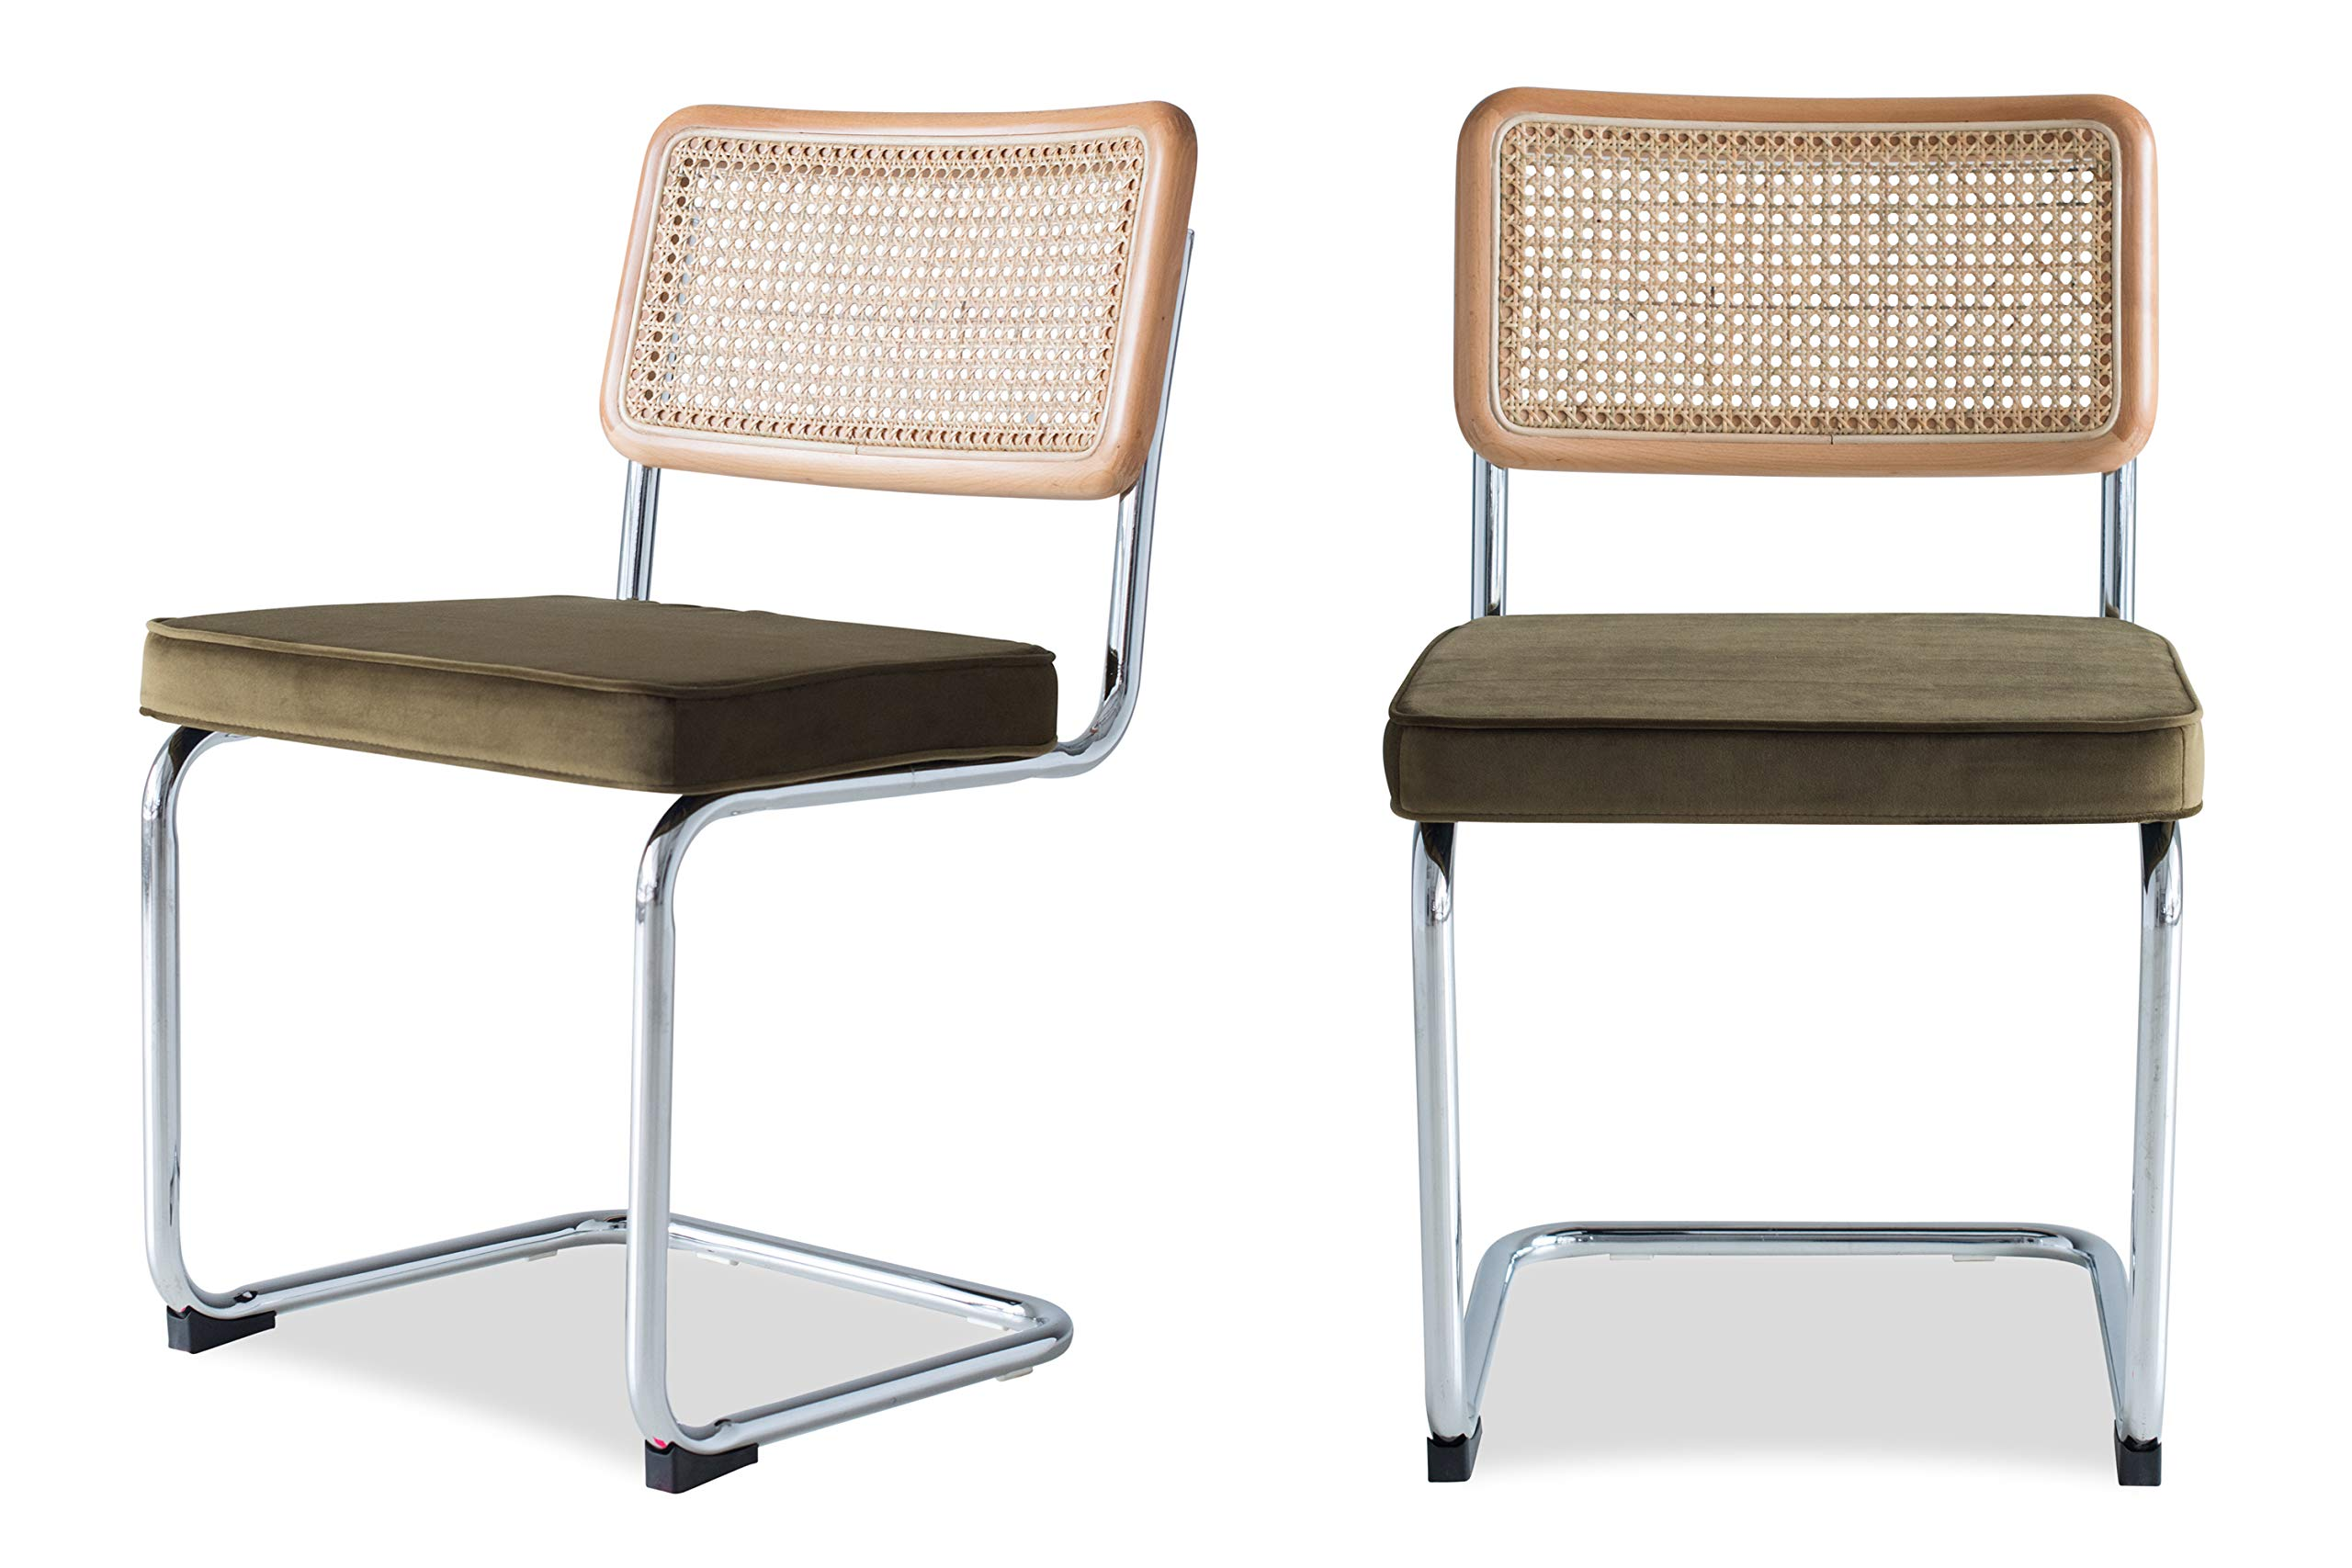 Edloe Finch Mid-Century Modern Dining Room Chairs Velvet Cushions - Rattan Back, Olive Green, by Edloe Finch